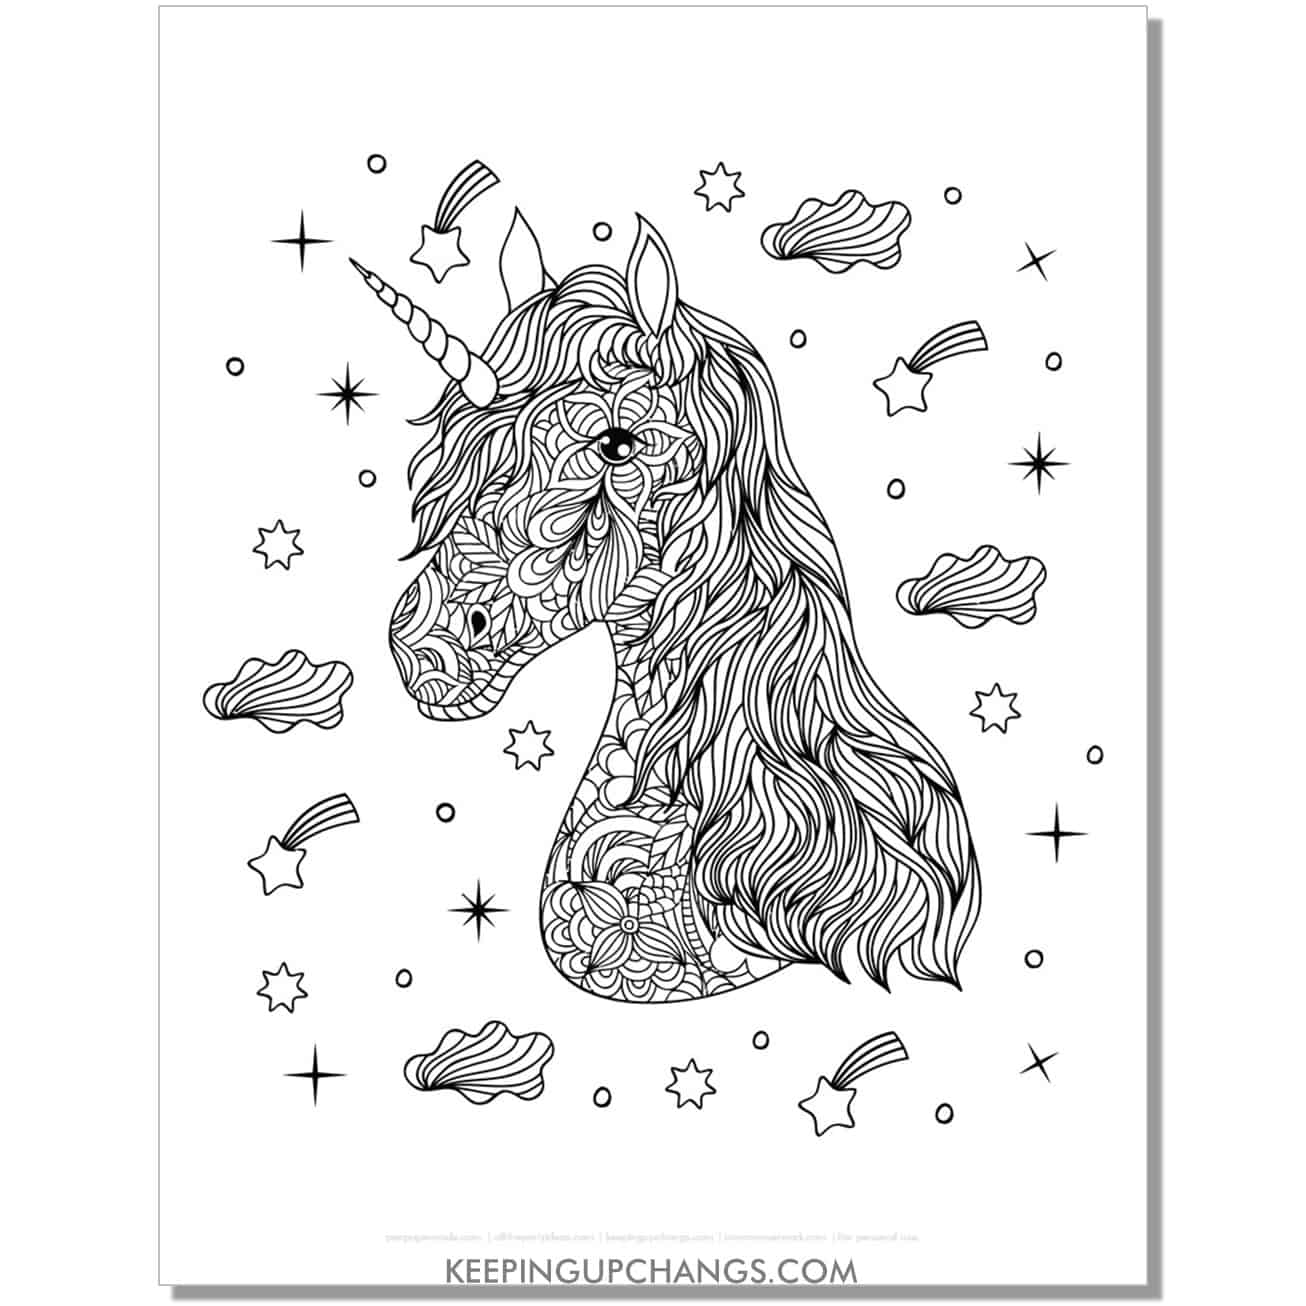 unicorn zentangle with stars and clouds coloring page.